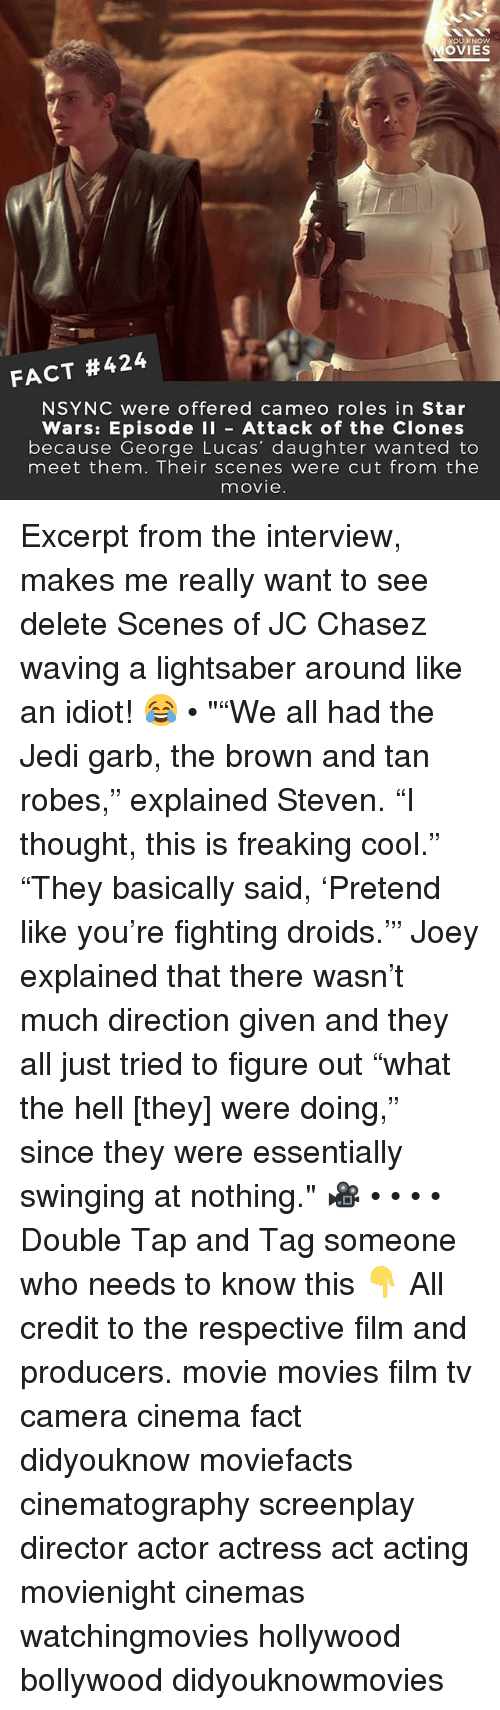 "Jedi, Lightsaber, and Memes: OU KNOW  OVIES  FACT #424  NSYNC were offered cameo roles in Star  Wars: Episode I Attack of the Clones  because George Lucas' daughter wanted to  meet them. Their scenes were cut from the  movie Excerpt from the interview, makes me really want to see delete Scenes of JC Chasez waving a lightsaber around like an idiot! 😂 • """"We all had the Jedi garb, the brown and tan robes,"" explained Steven. ""I thought, this is freaking cool."" ""They basically said, 'Pretend like you're fighting droids.'"" Joey explained that there wasn't much direction given and they all just tried to figure out ""what the hell [they] were doing,"" since they were essentially swinging at nothing."" 🎥 • • • • Double Tap and Tag someone who needs to know this 👇 All credit to the respective film and producers. movie movies film tv camera cinema fact didyouknow moviefacts cinematography screenplay director actor actress act acting movienight cinemas watchingmovies hollywood bollywood didyouknowmovies"